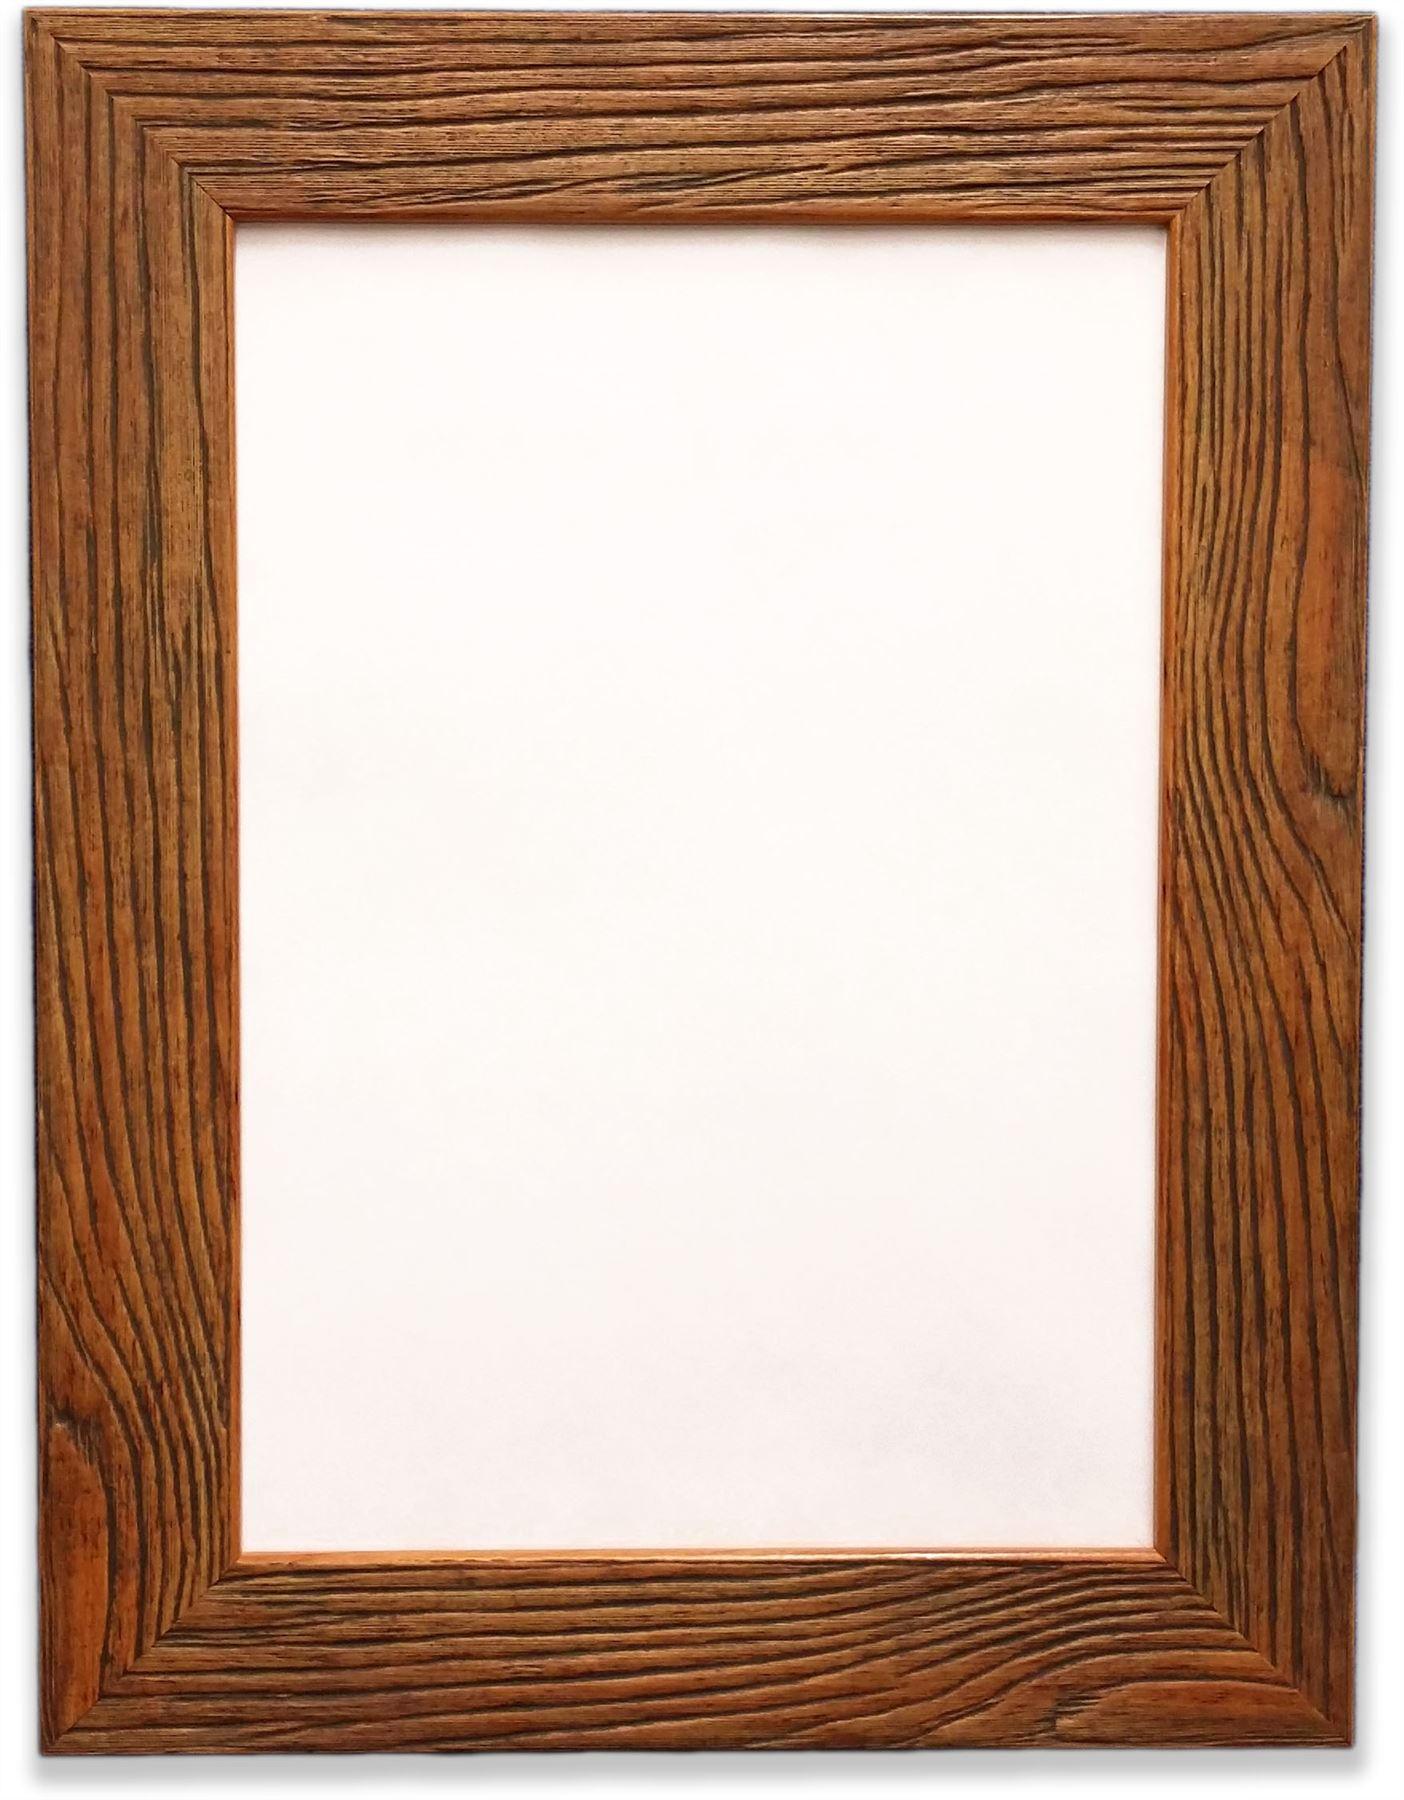 Wood Photo Frames : Dark Rustic Wood Grain Finish Photo/Picture Frame 43mm wide - Various ...